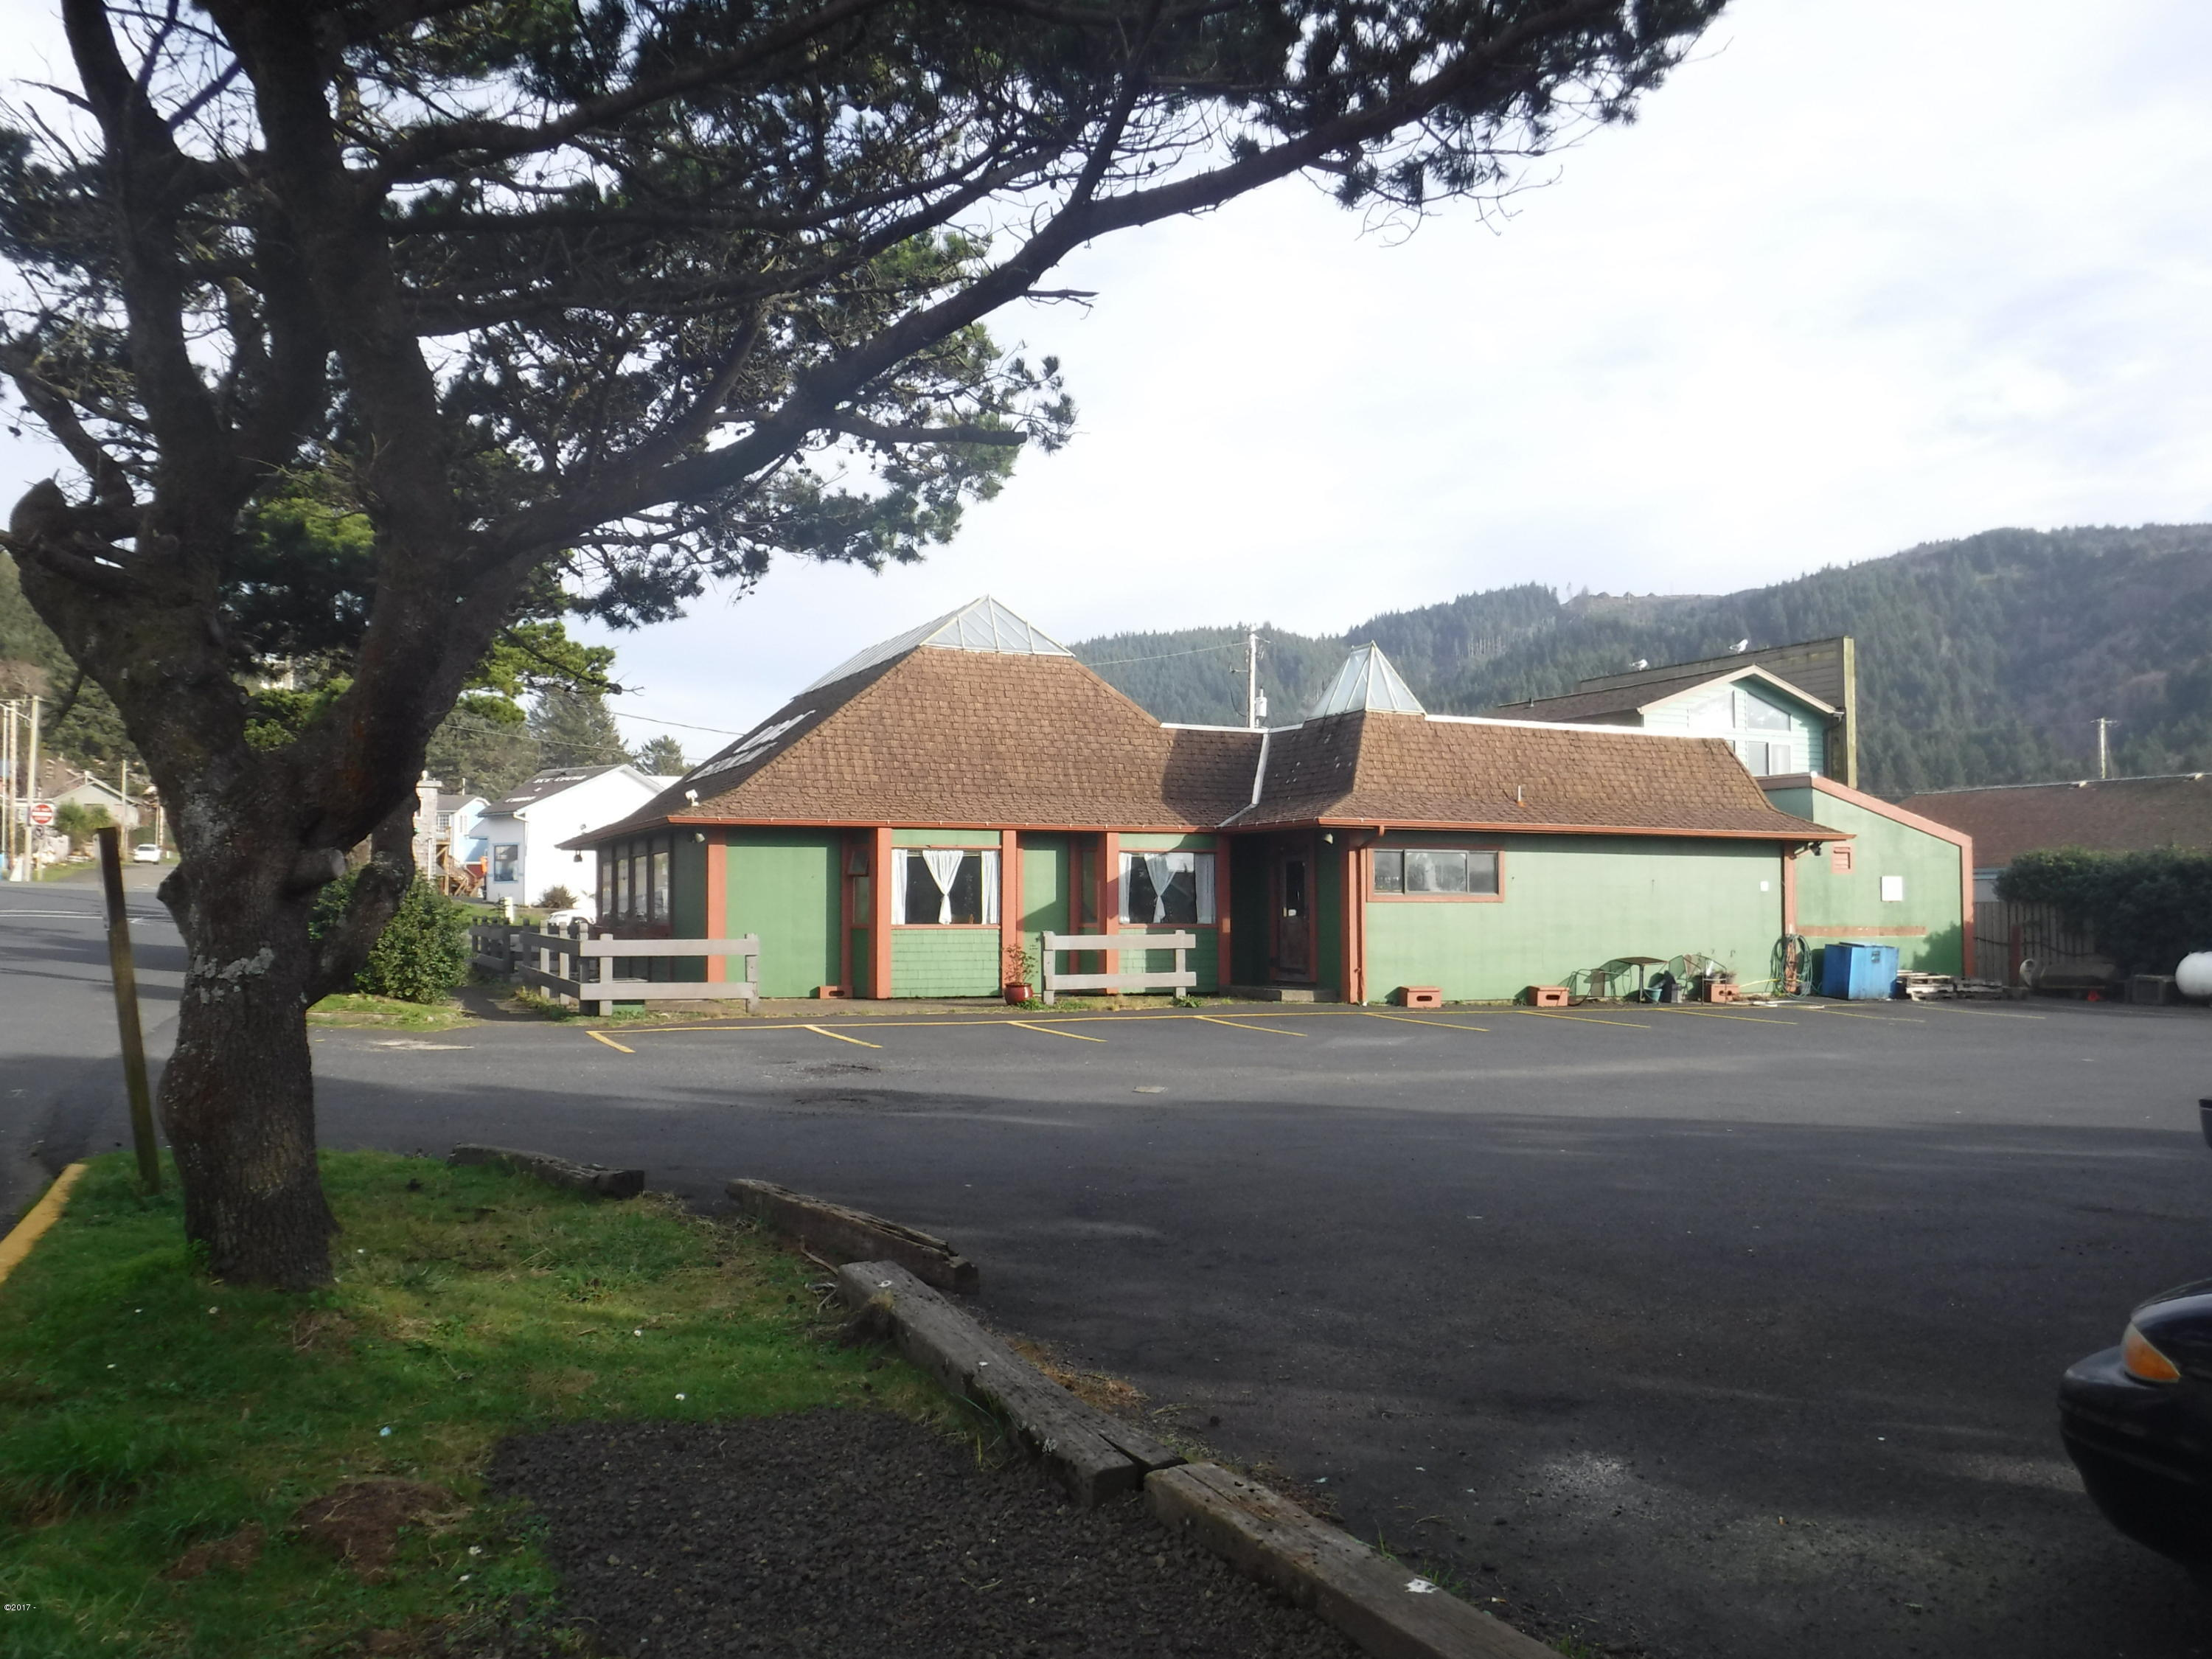 160 W 2nd St, Yachats, OR 97498 - COMMERCIAL BLDG